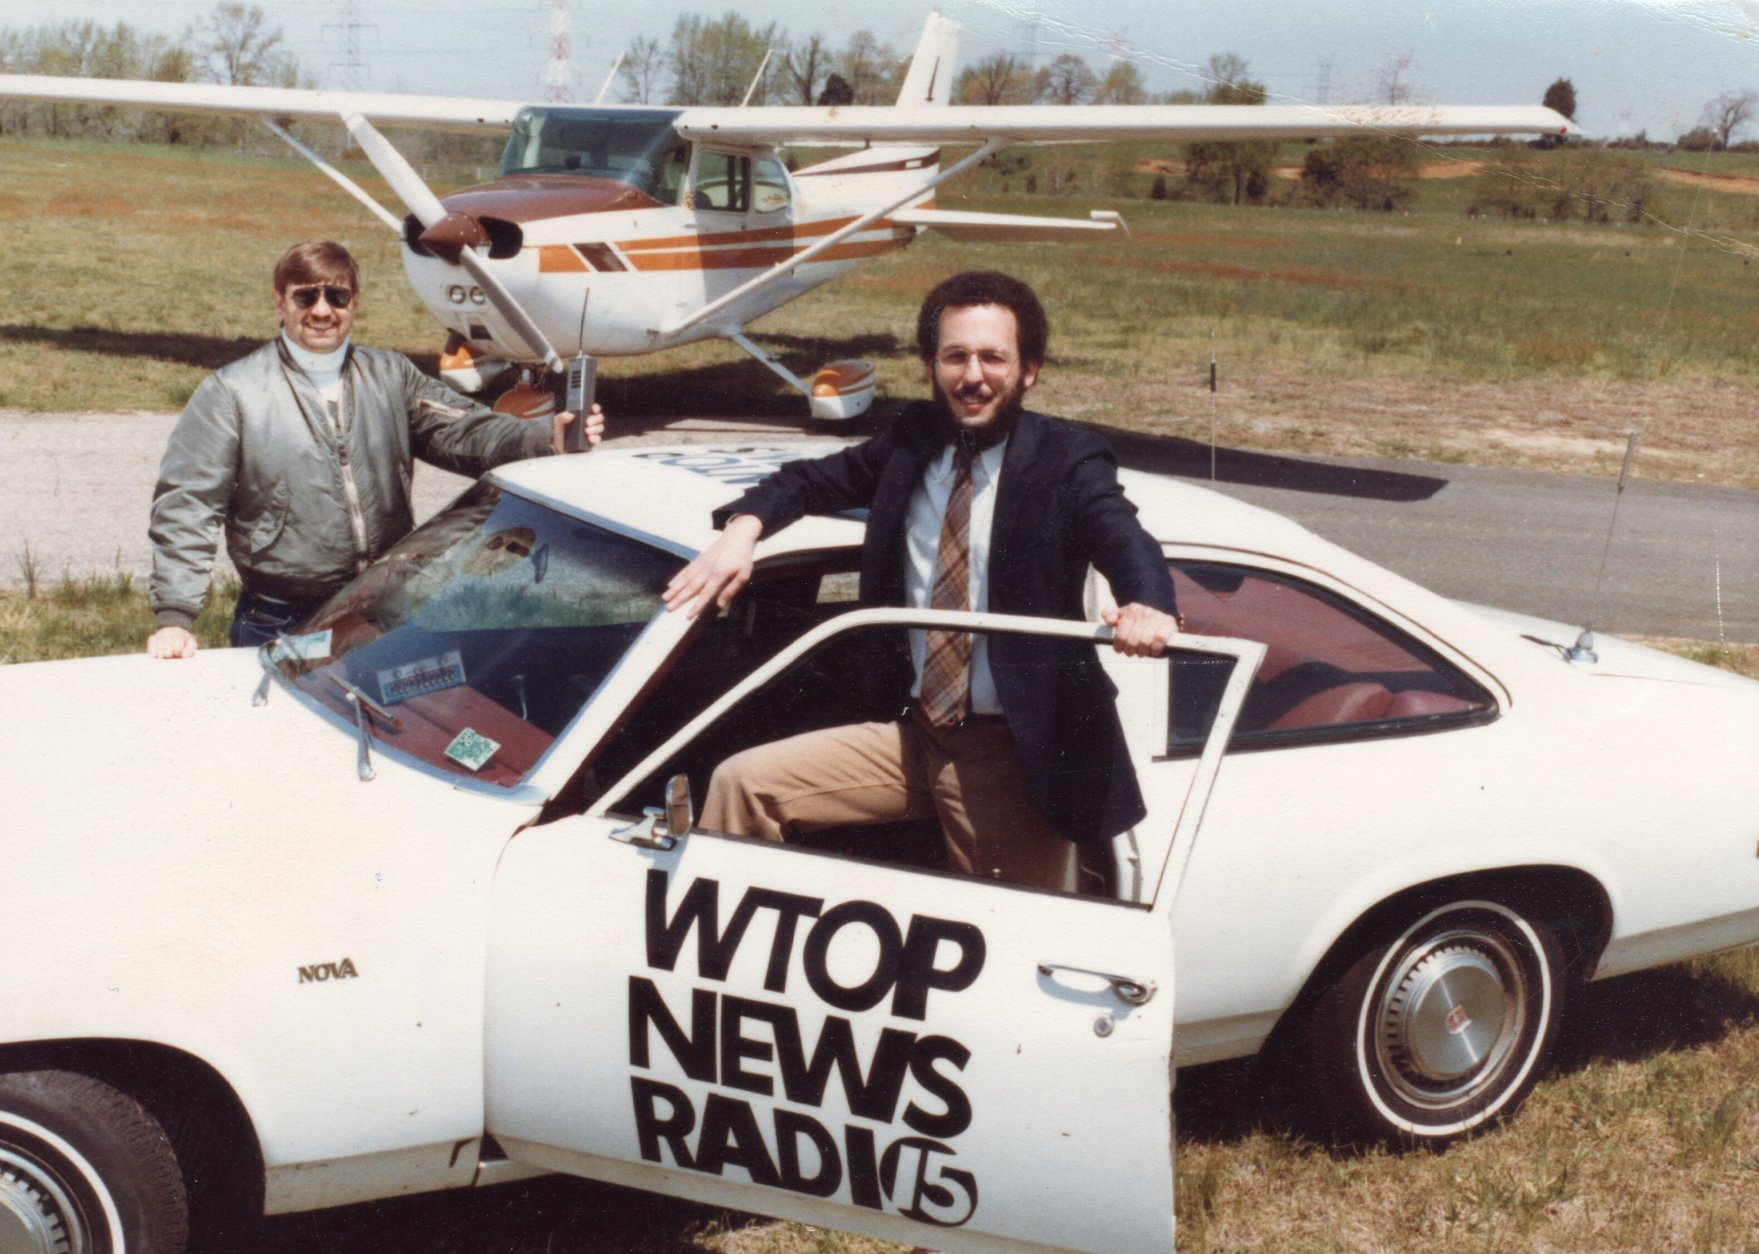 WTOP's Bob Marbourg (left) and Dave Statter covered traffic during the early '80s. Back then, it meant taking to the skies. (Courtesy Dave Statter)